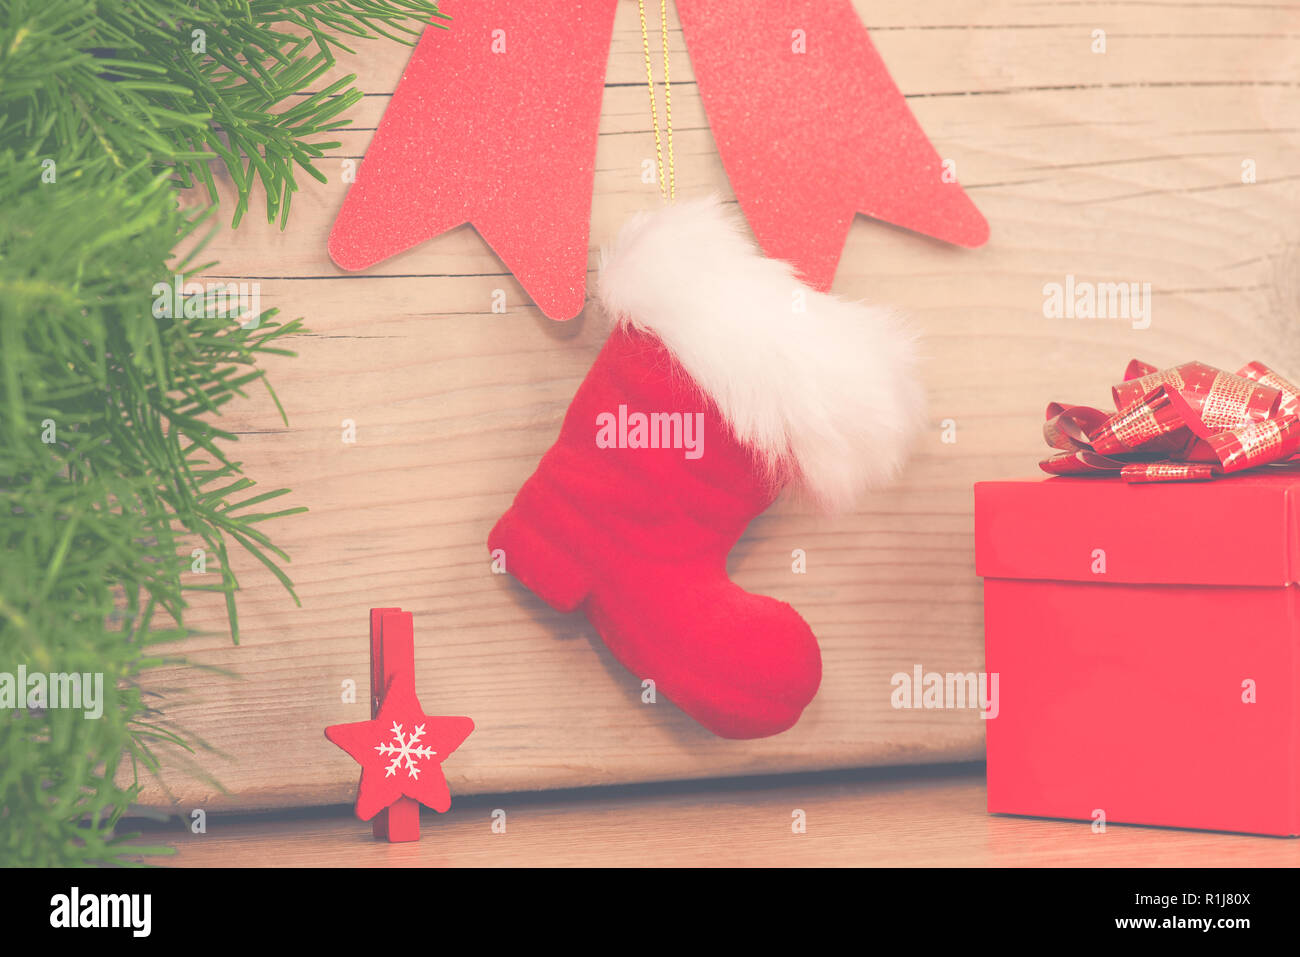 Christmas arrangement with red boot, gift and wooden star - Stock Image